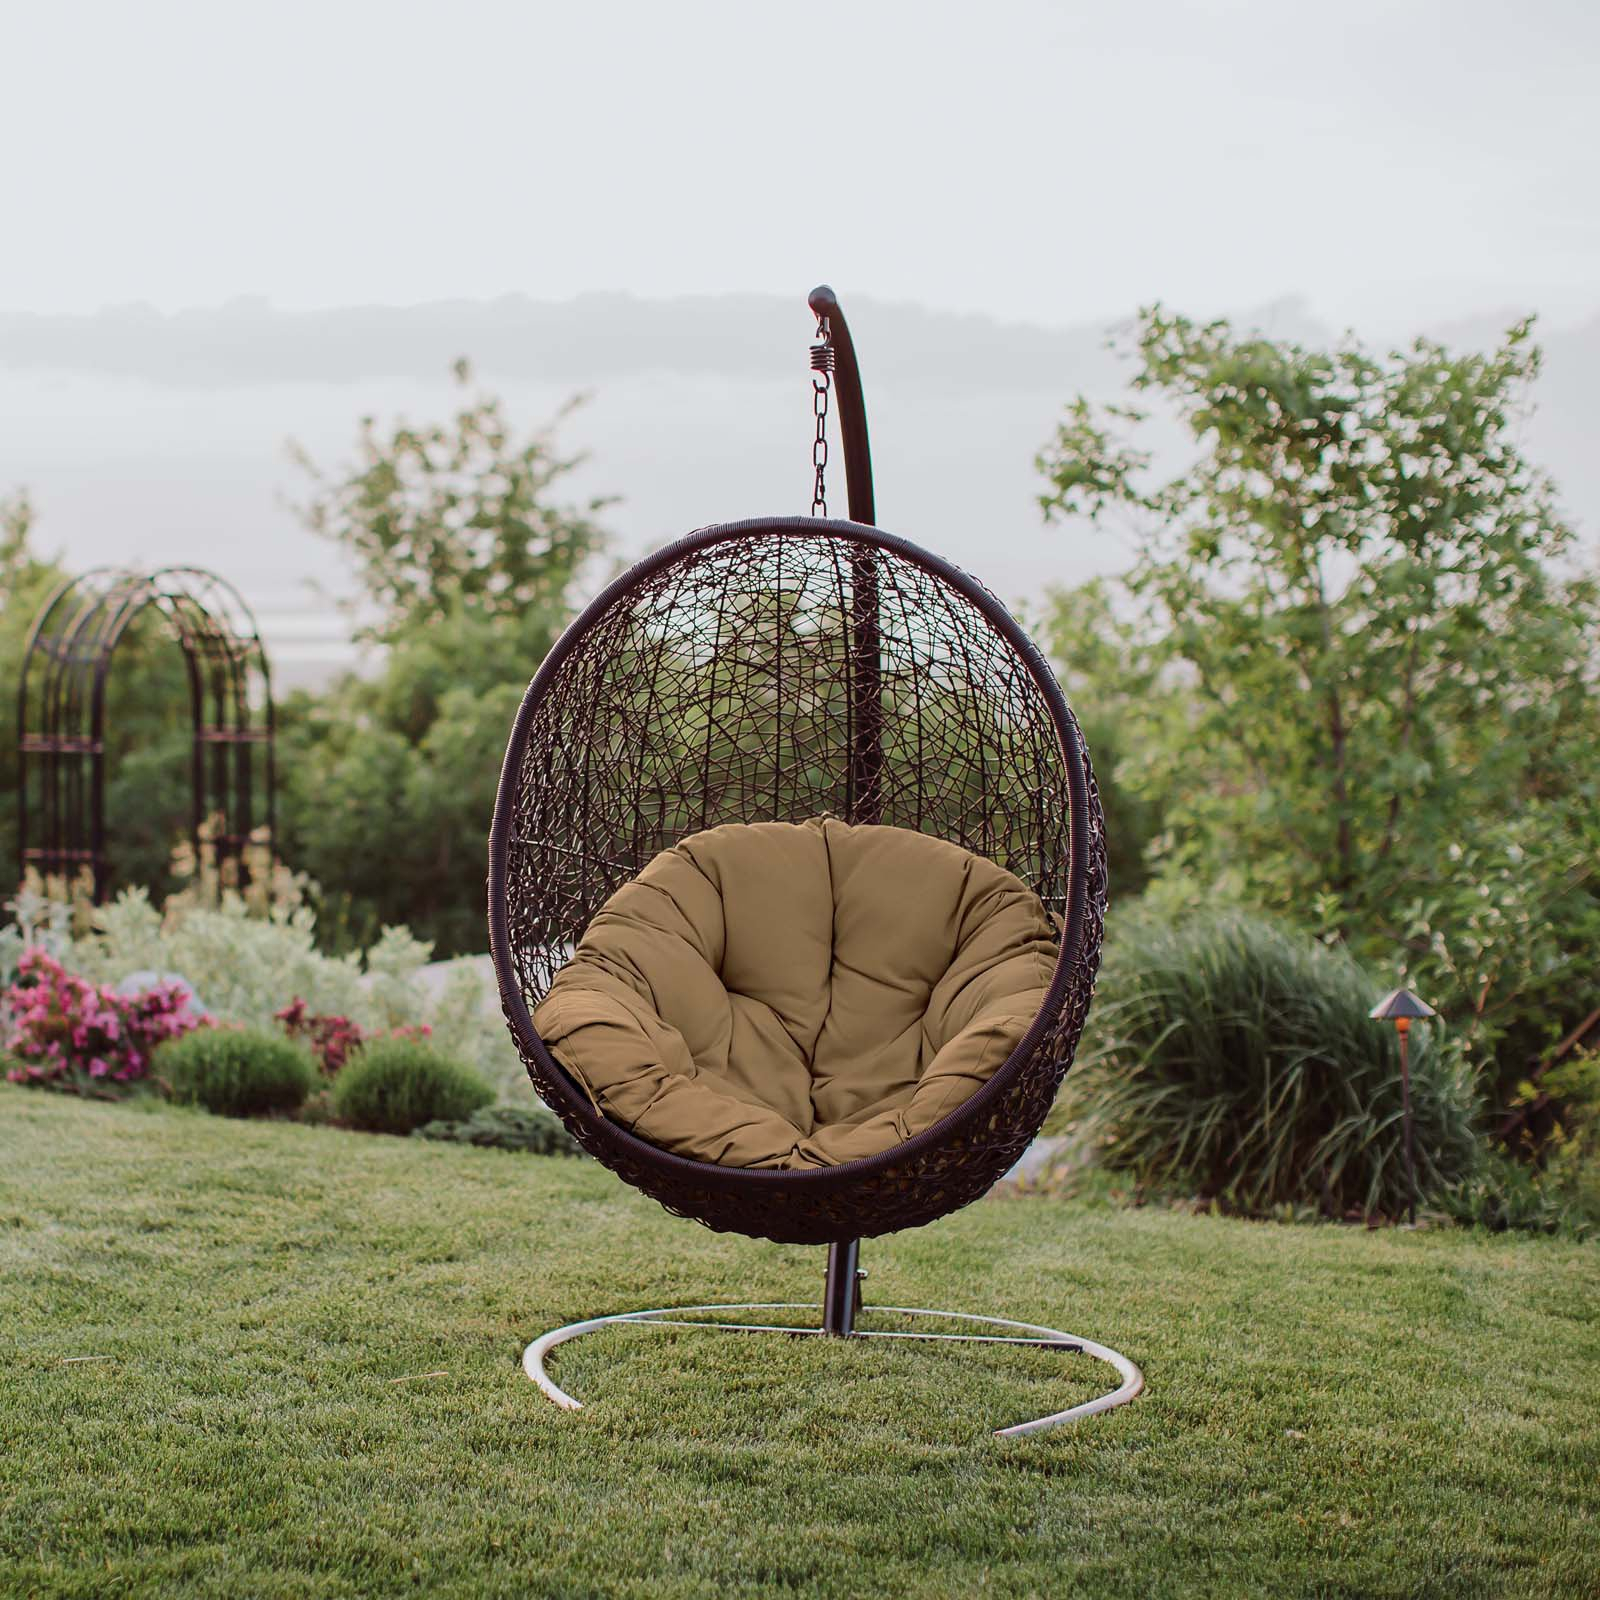 Appealing Outdoor Patio Swing Chair Colors Black Hammock Intended For Wicker Glider Outdoor Porch Swings With Stand (View 22 of 25)